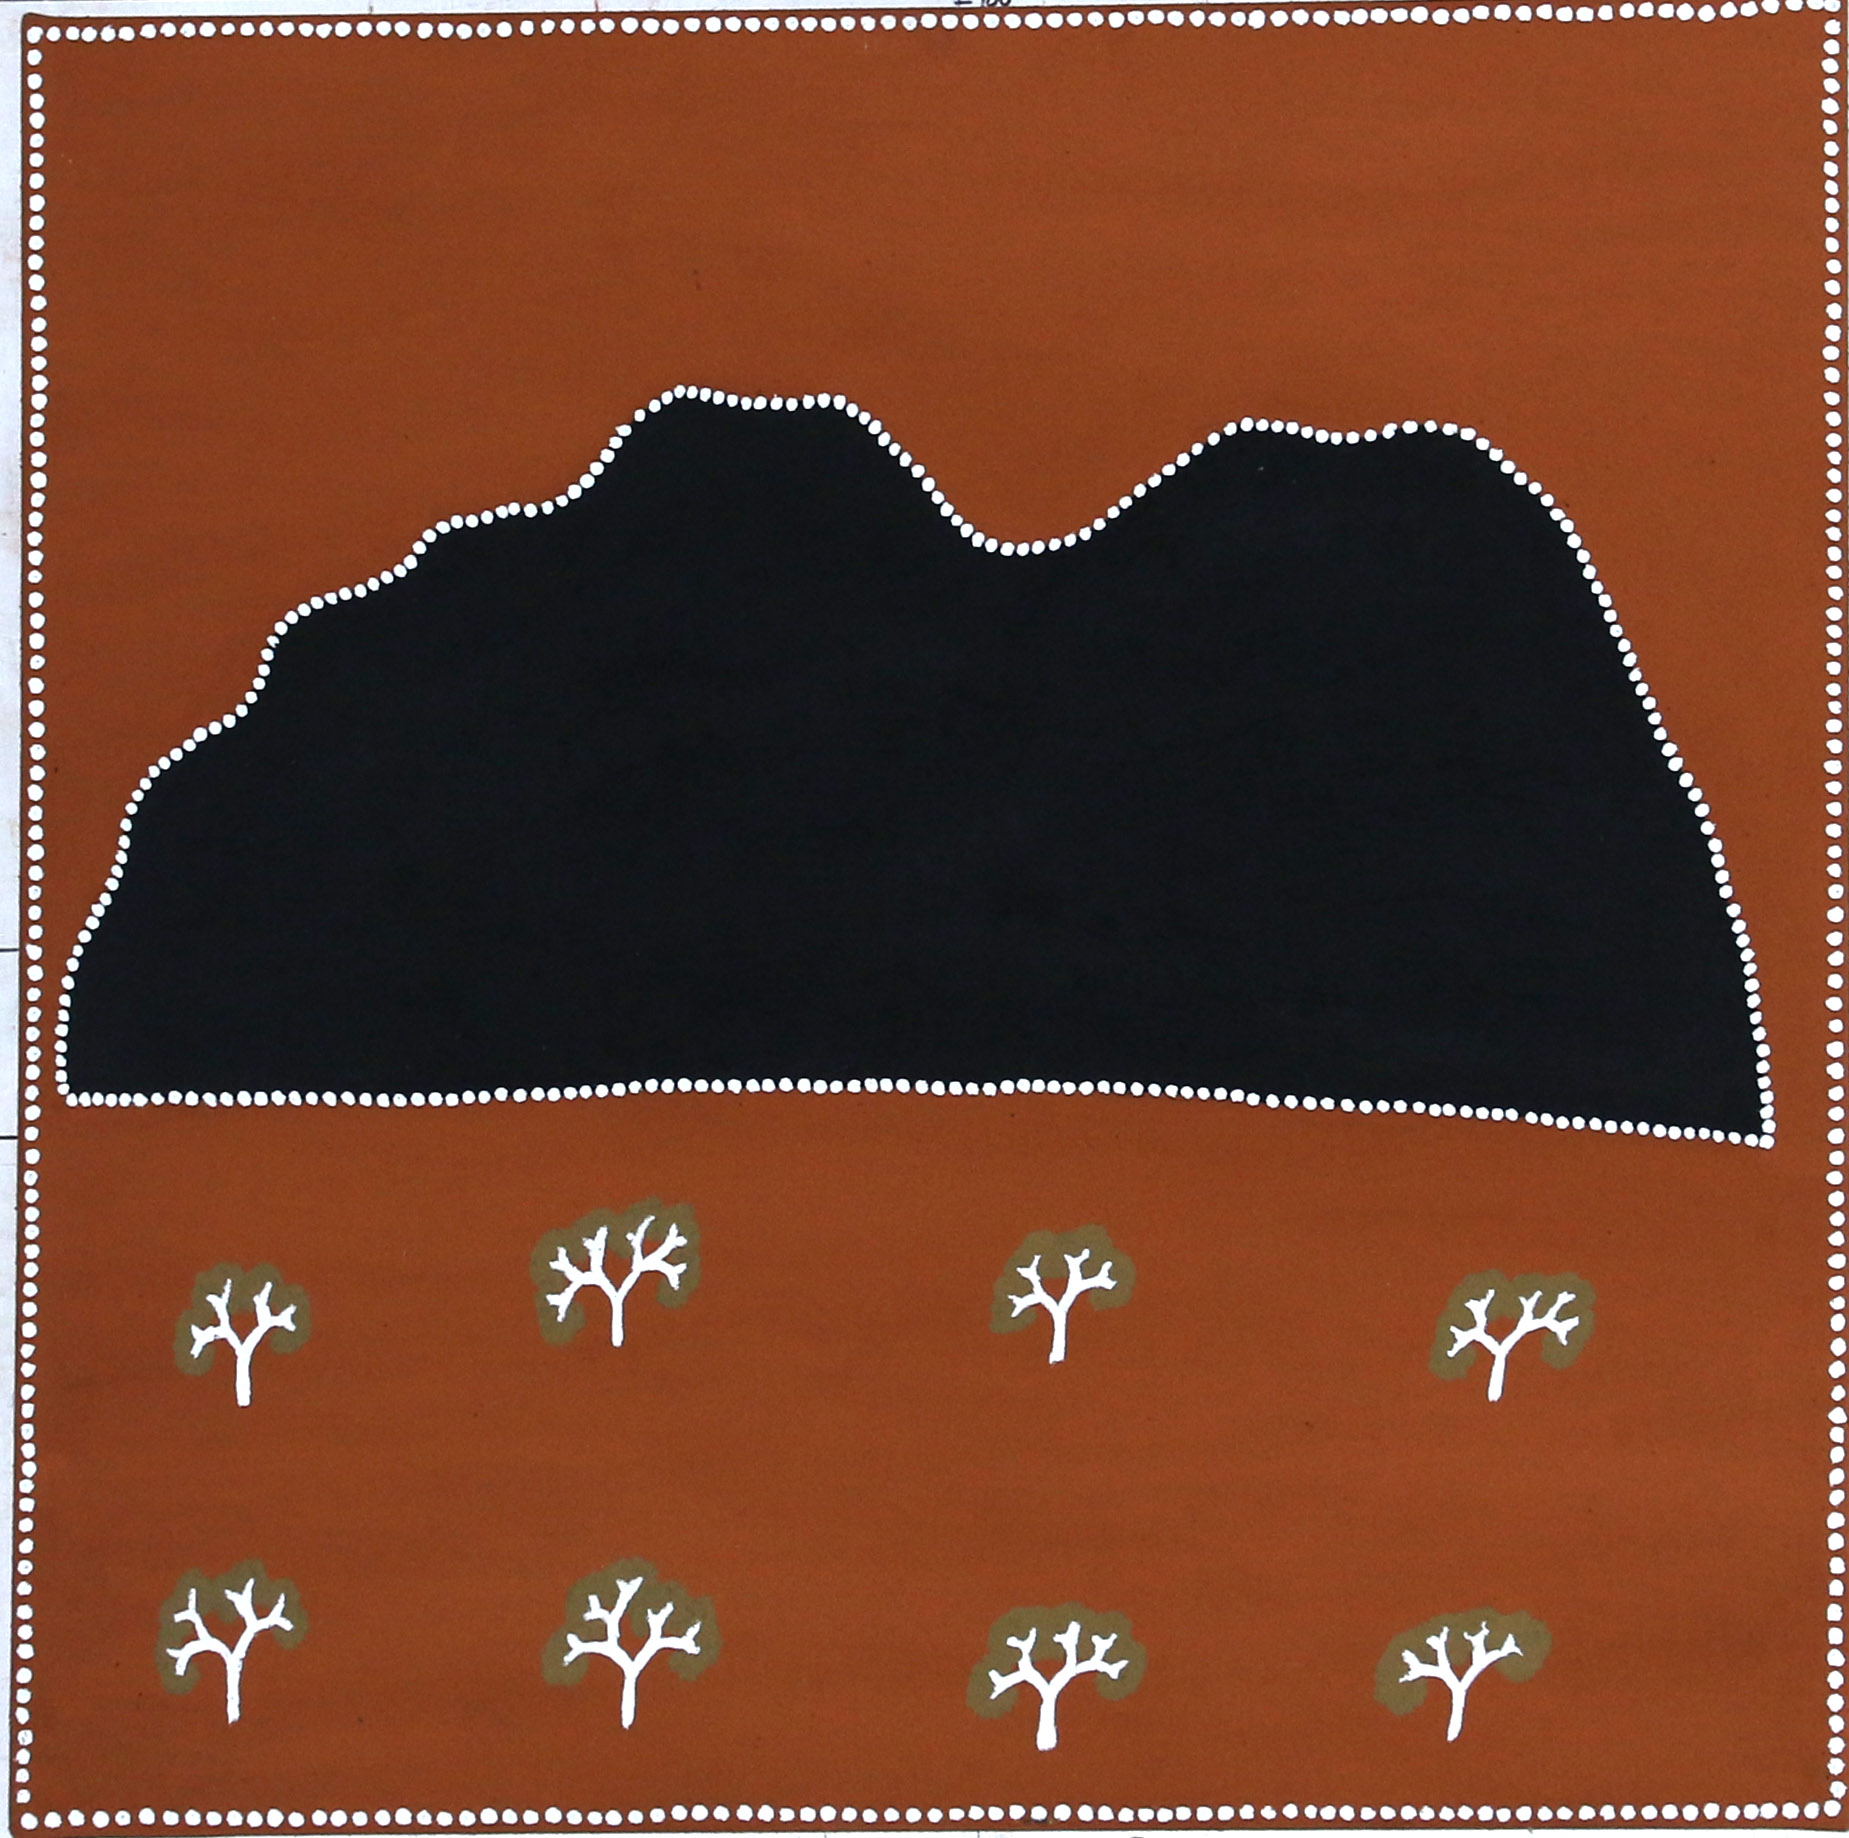 Tracey Ramsay. Black Hill. 2018. Natural ochre and pigments on canvas. 80 x 80 cm $750